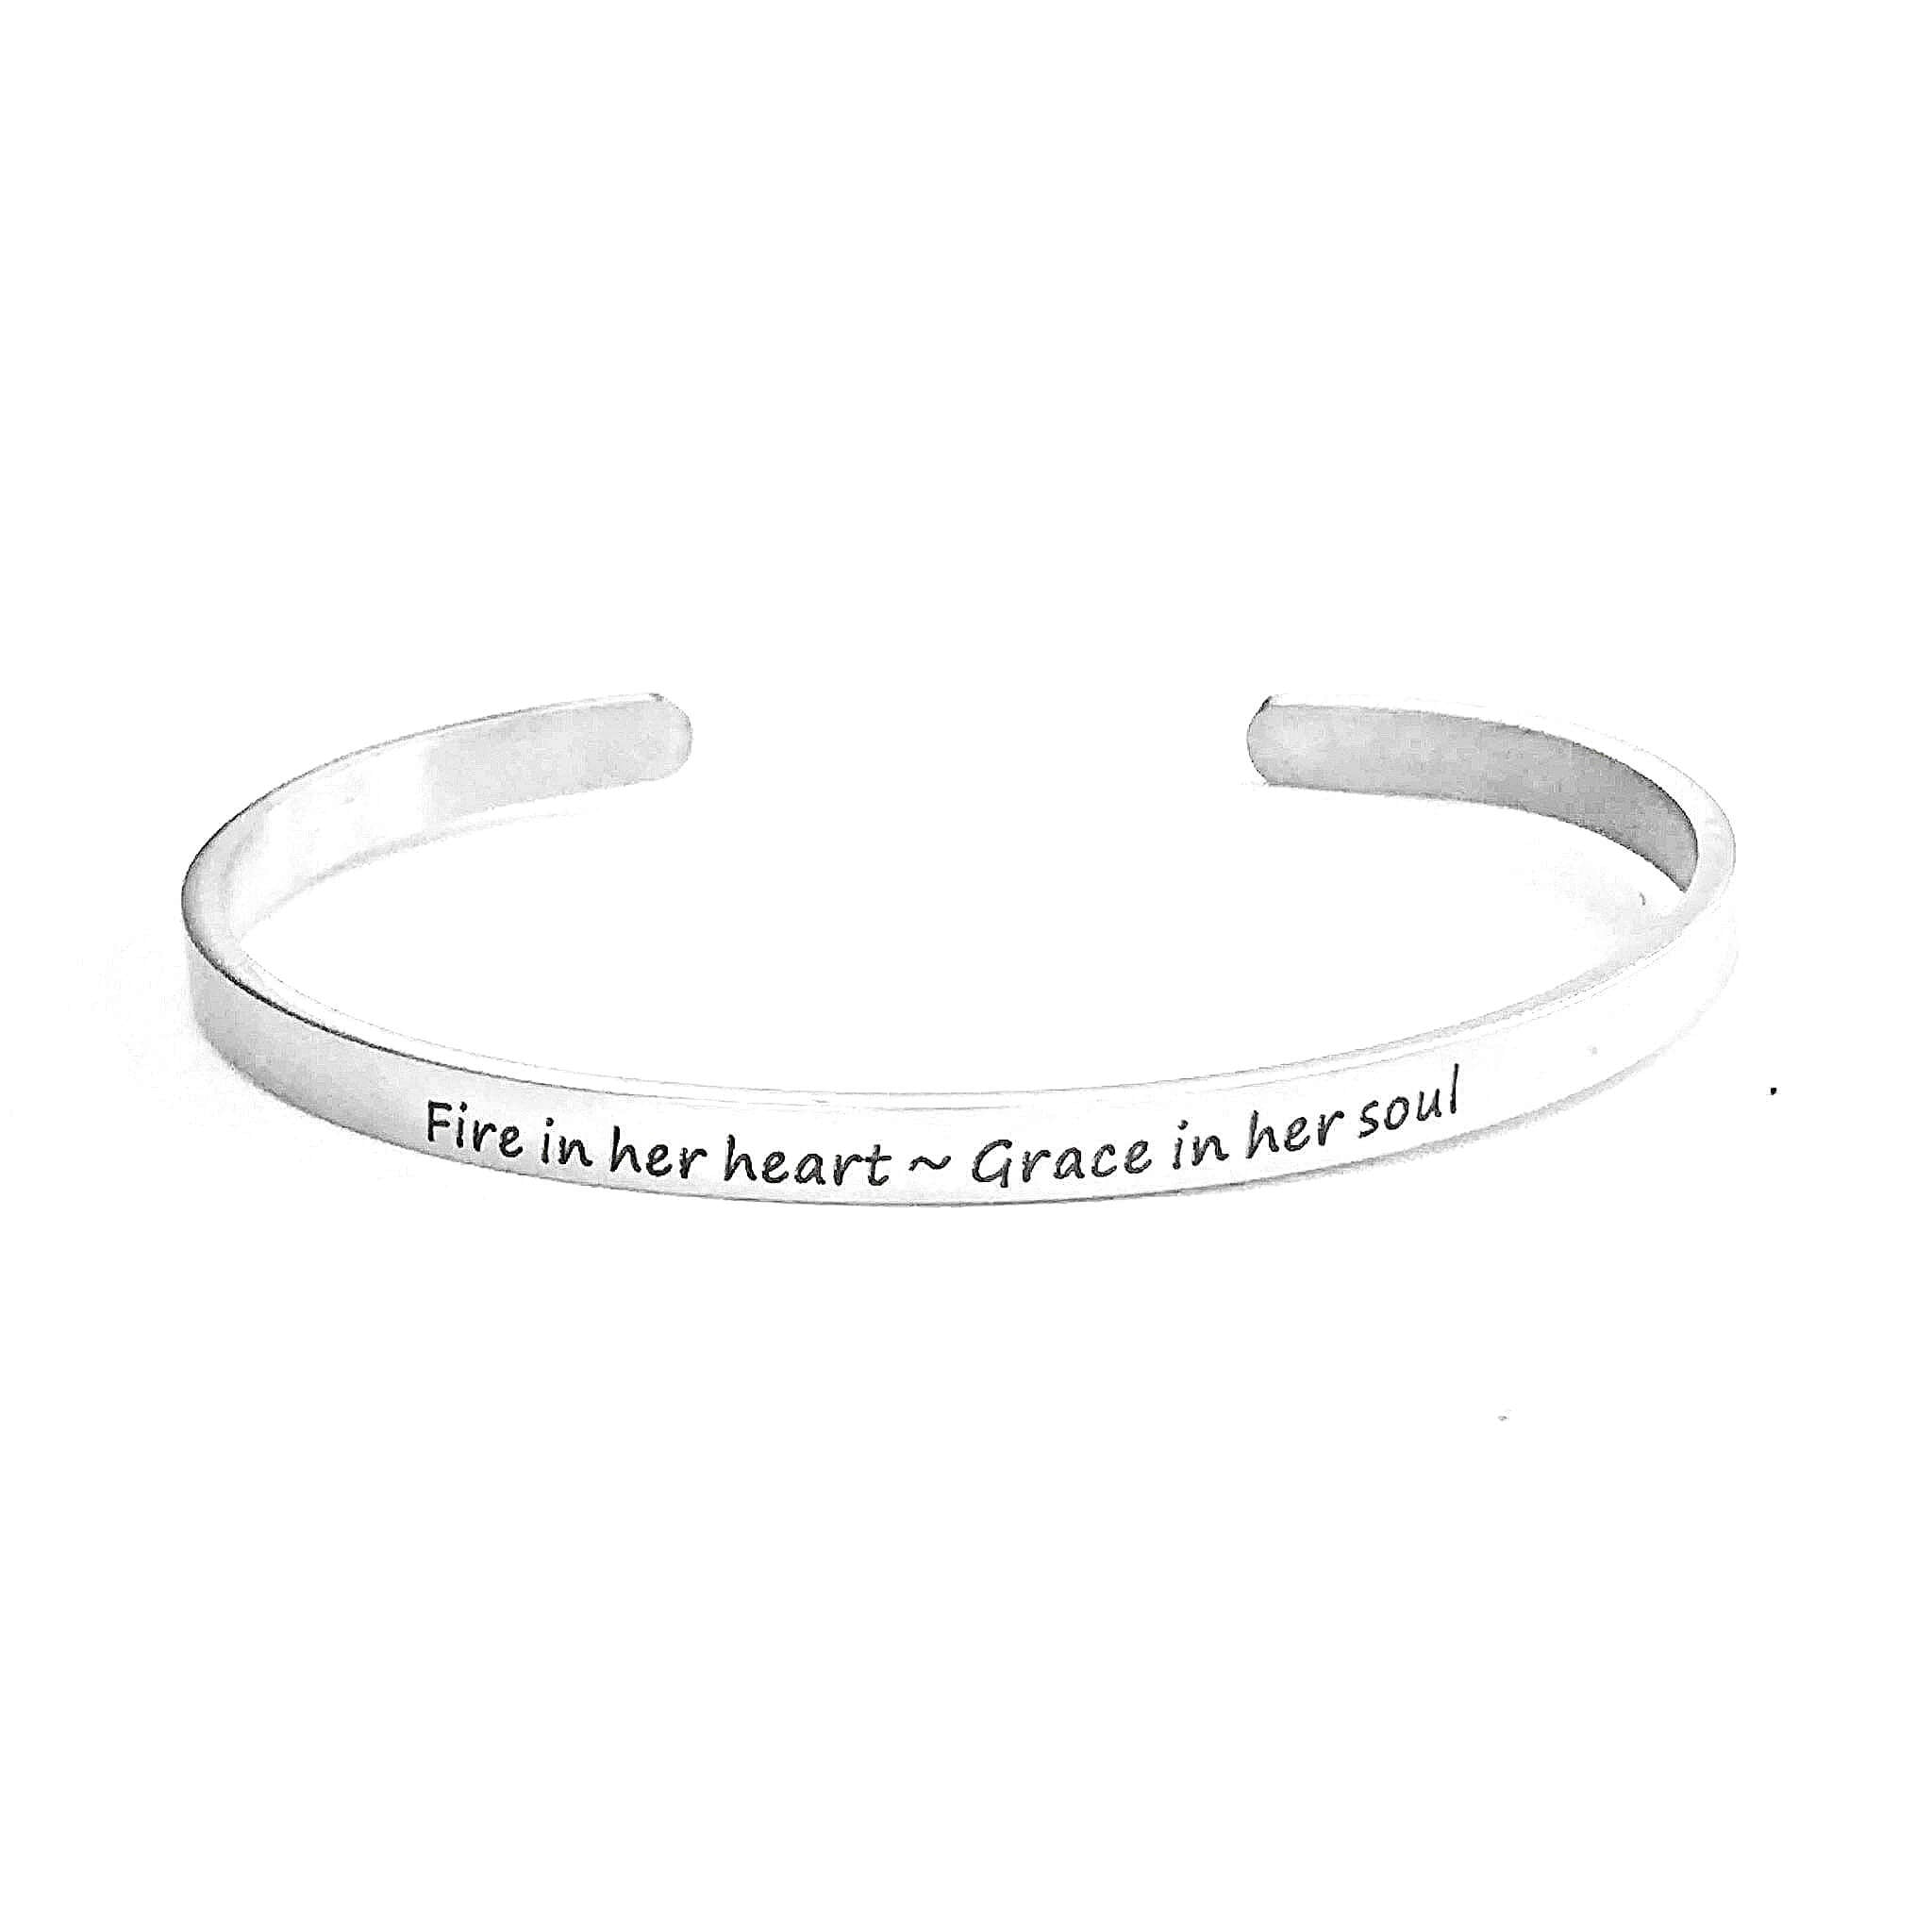 Fire in her heart grace in her sould cuff bracelet-Charmful Impressions